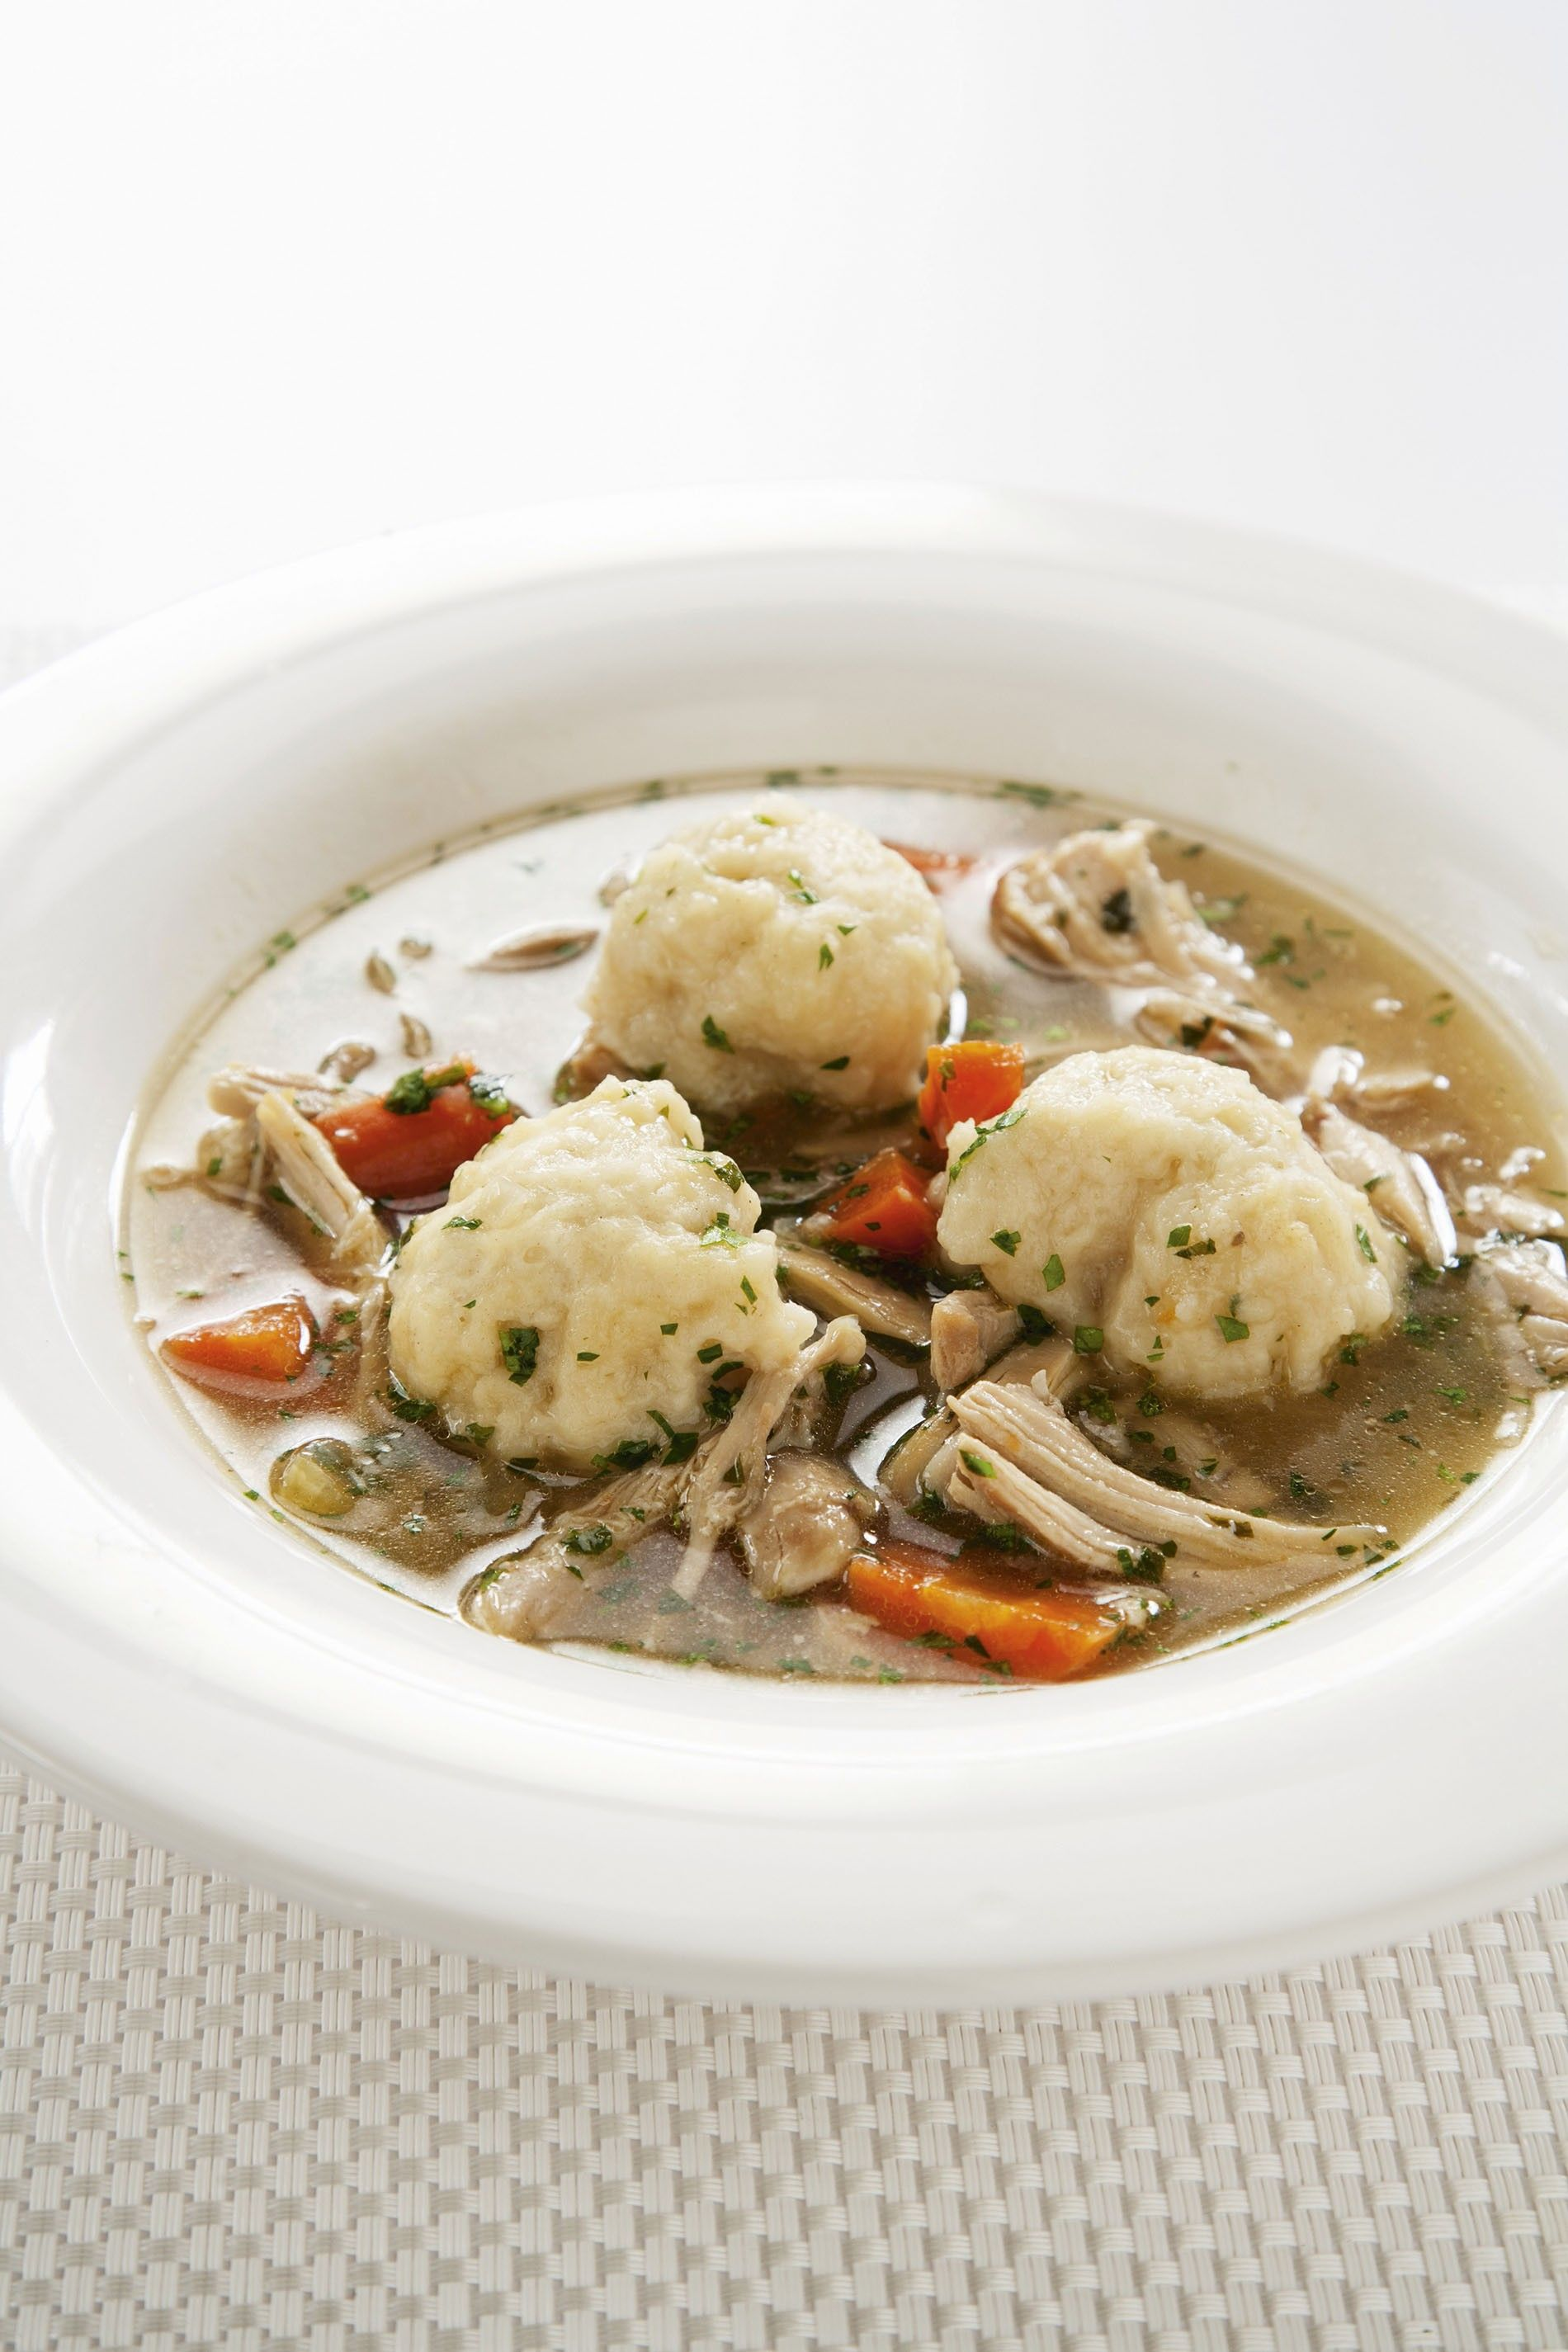 How to make it: Marc Surette's chicken fricot recipe | National Geographic